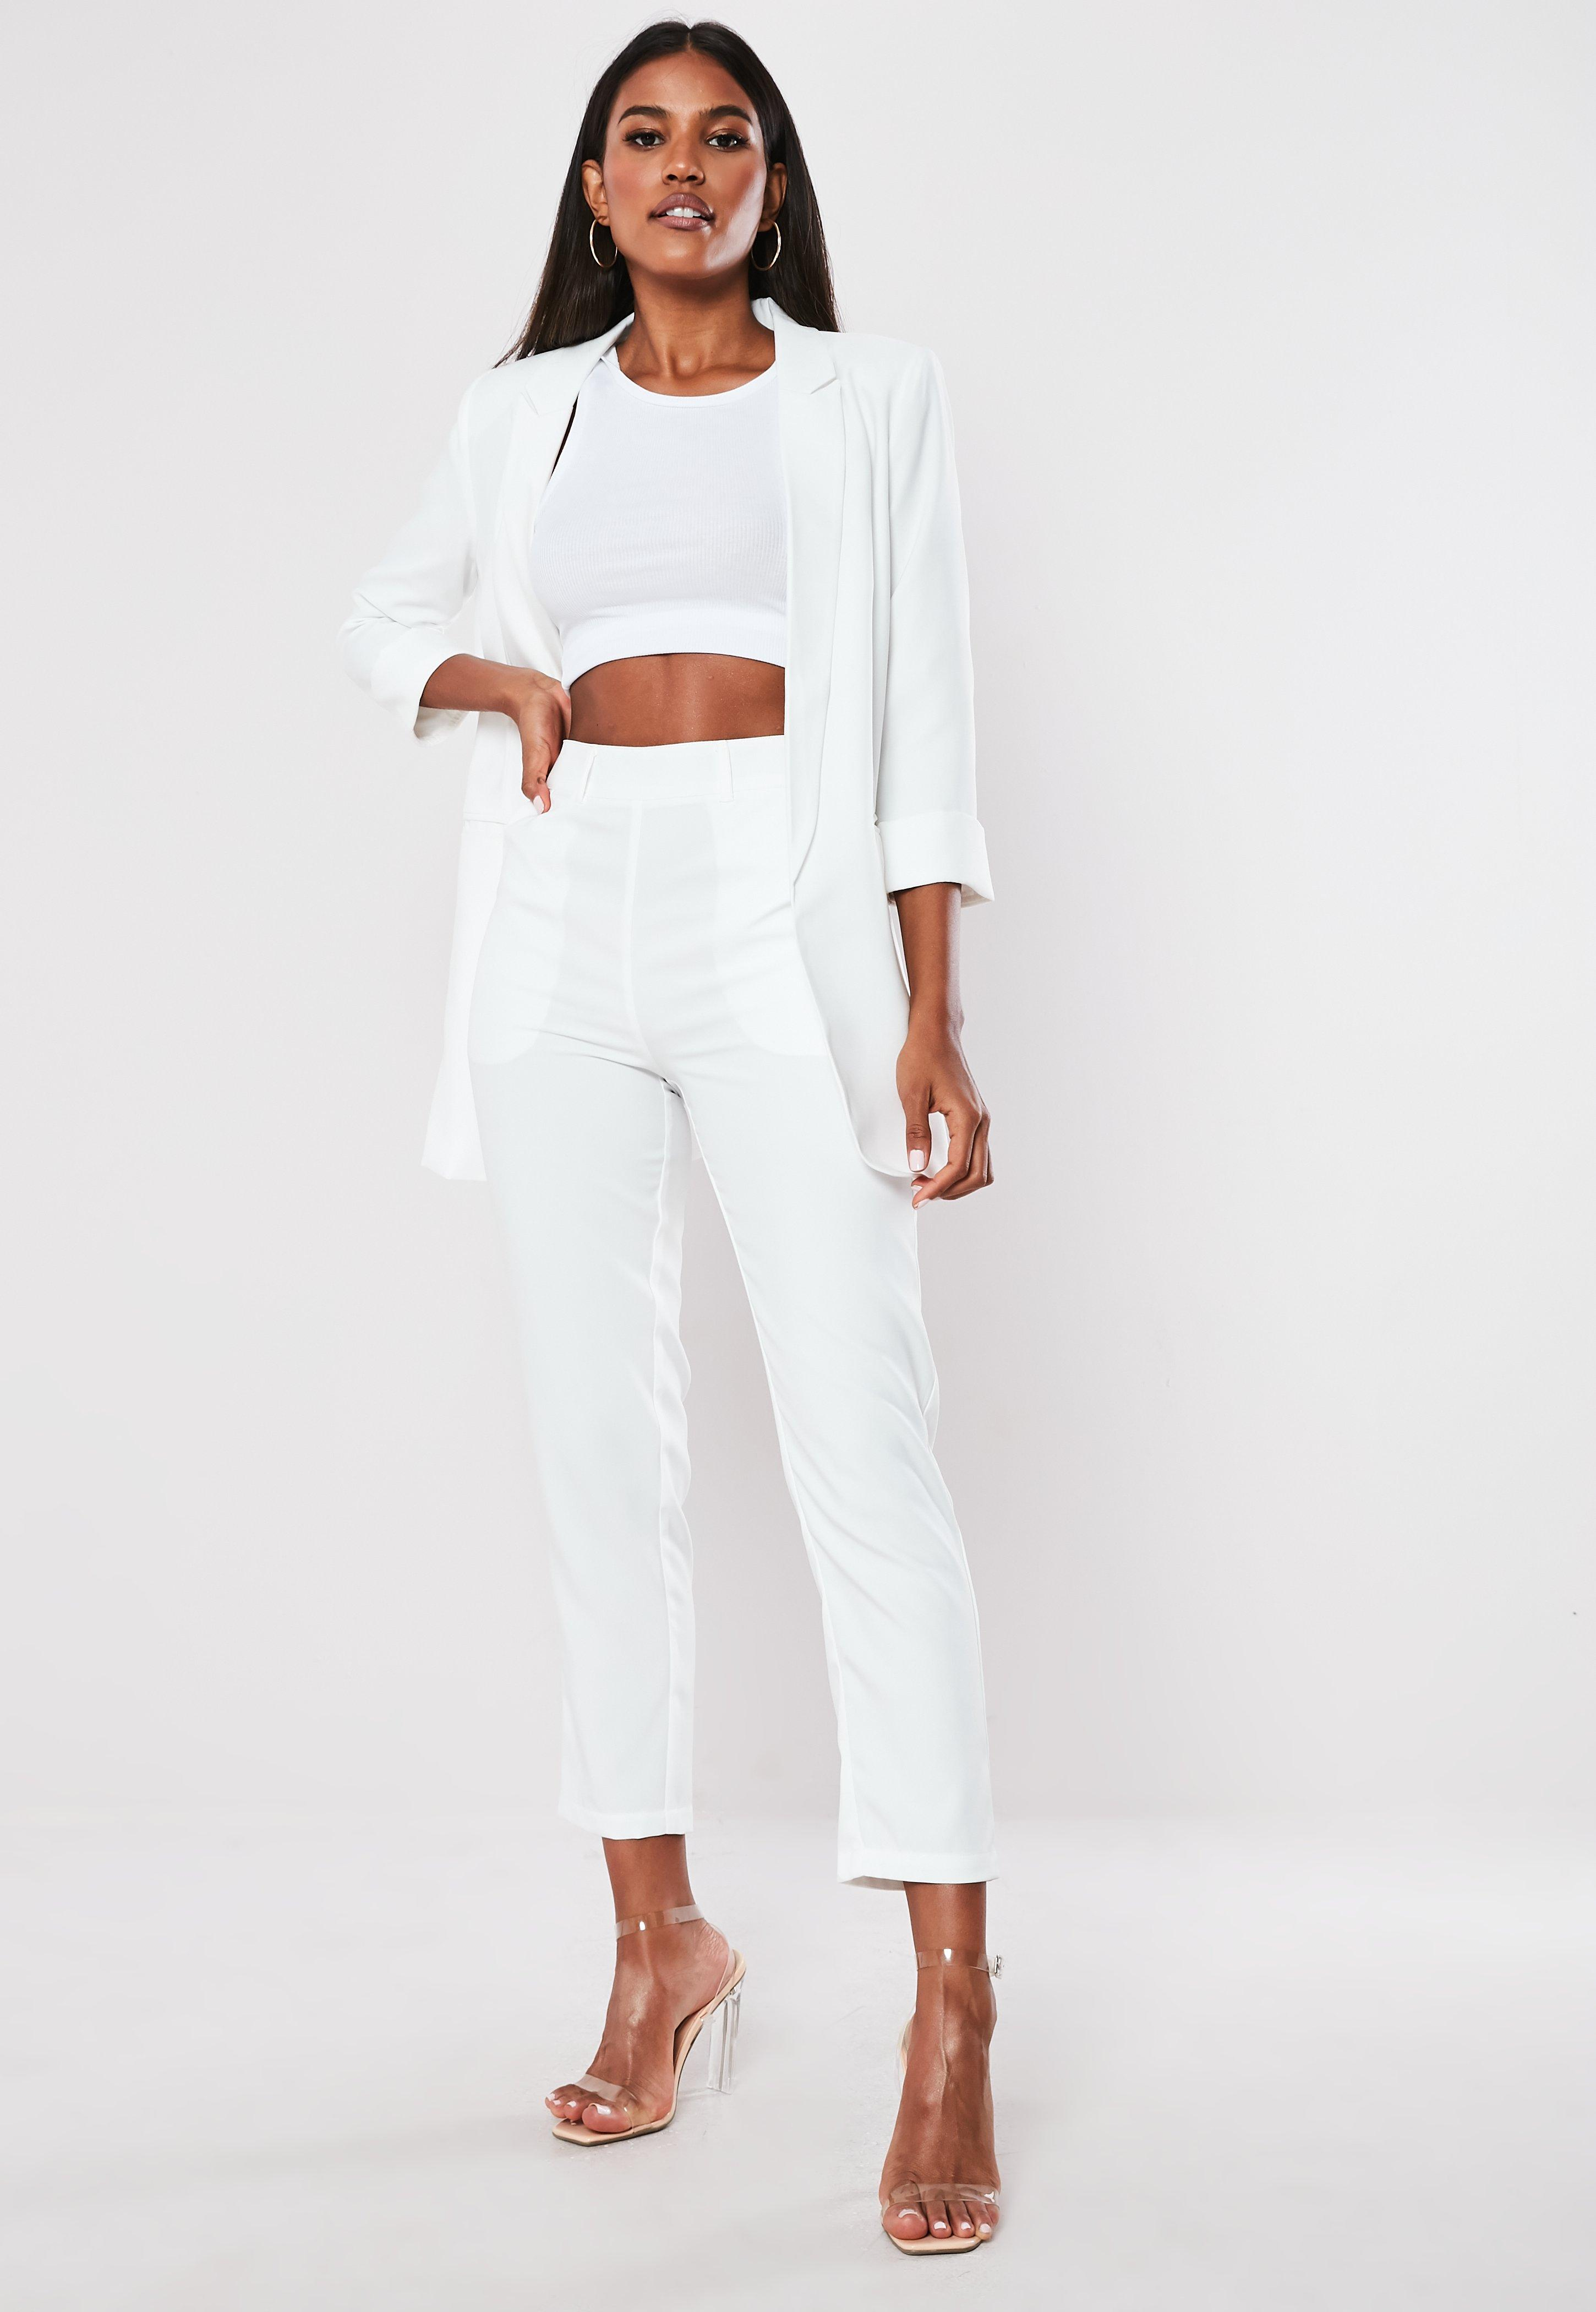 2a3d5170590e Women's Tailoring | Suits for Women & Tailored Sets - Missguided